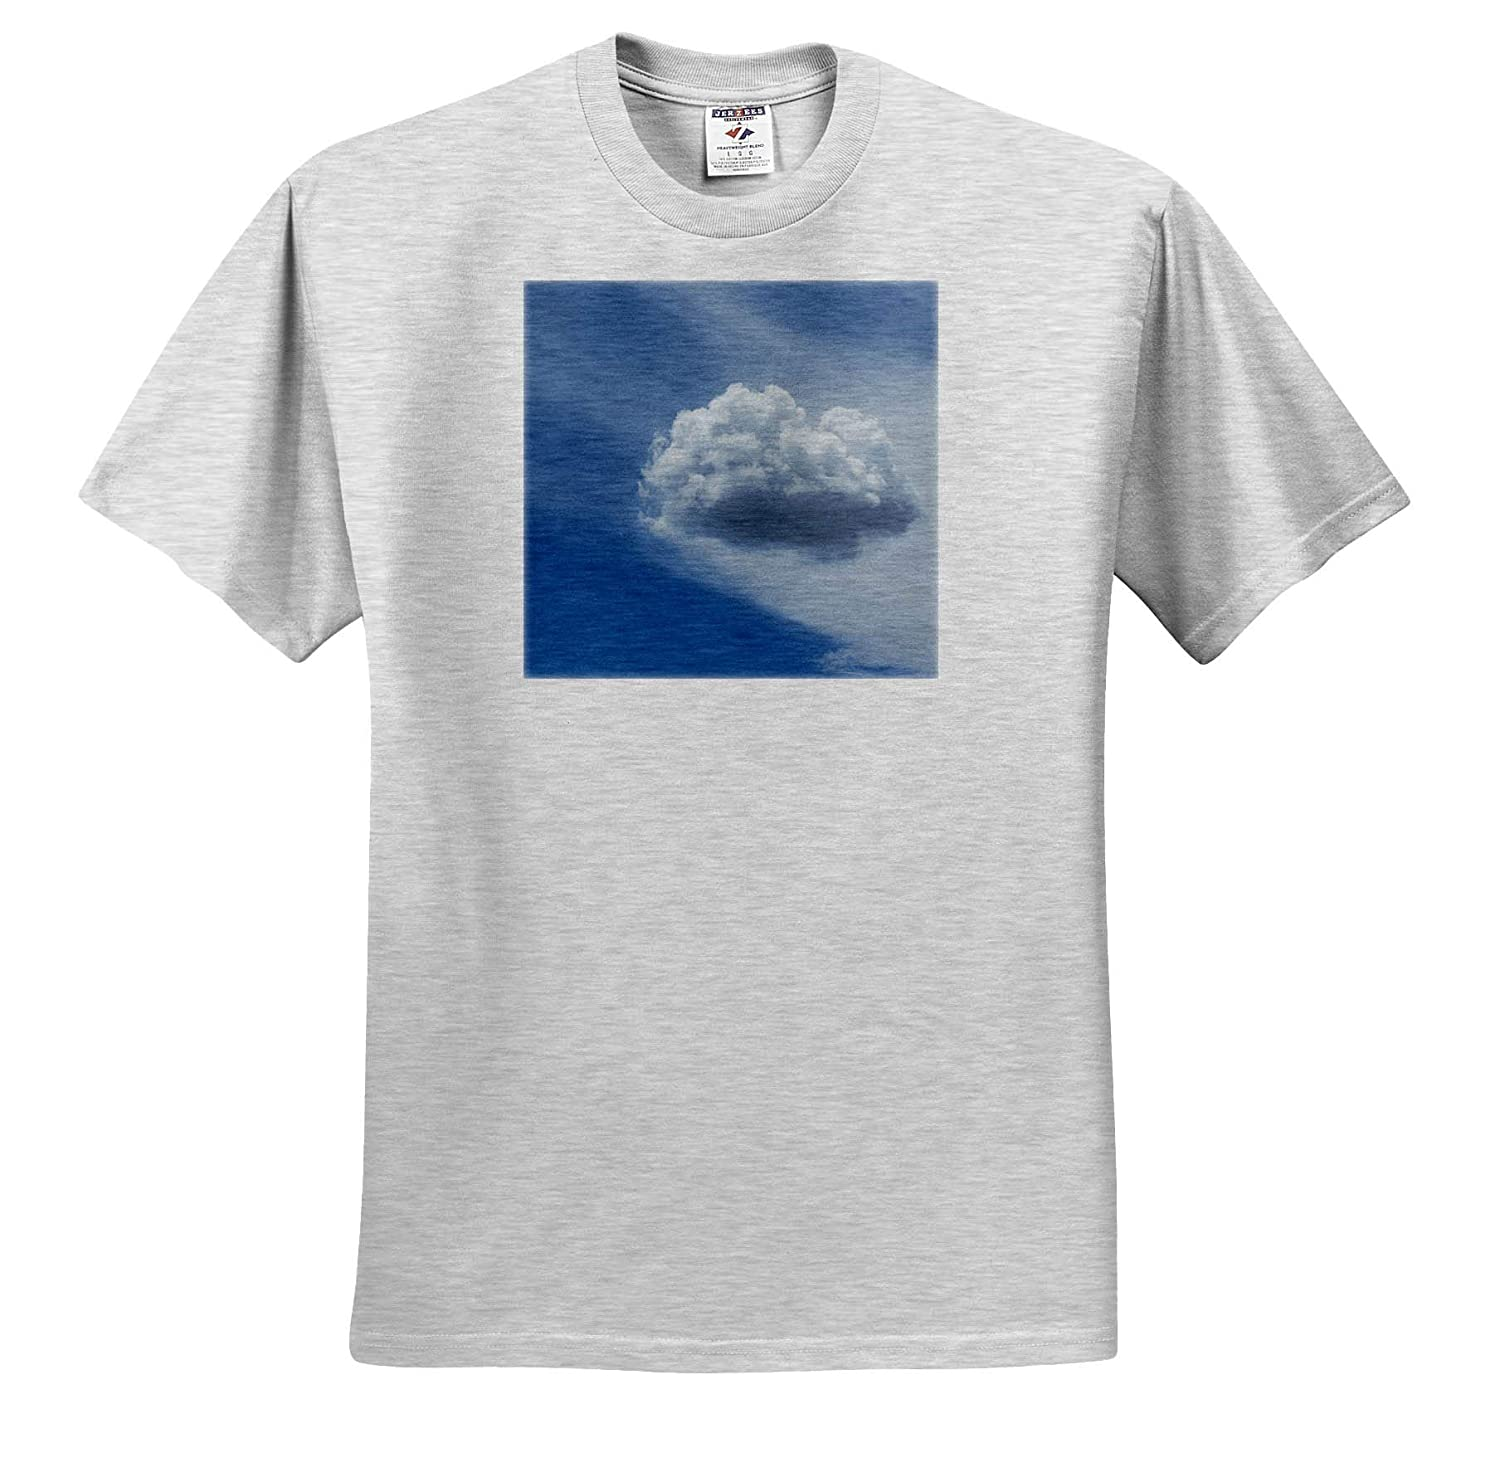 ts/_319019 Adult T-Shirt XL 3dRose Jos Fauxtographee- Coud A Floating Cloud on a Blue Sky in a Cottony Puff